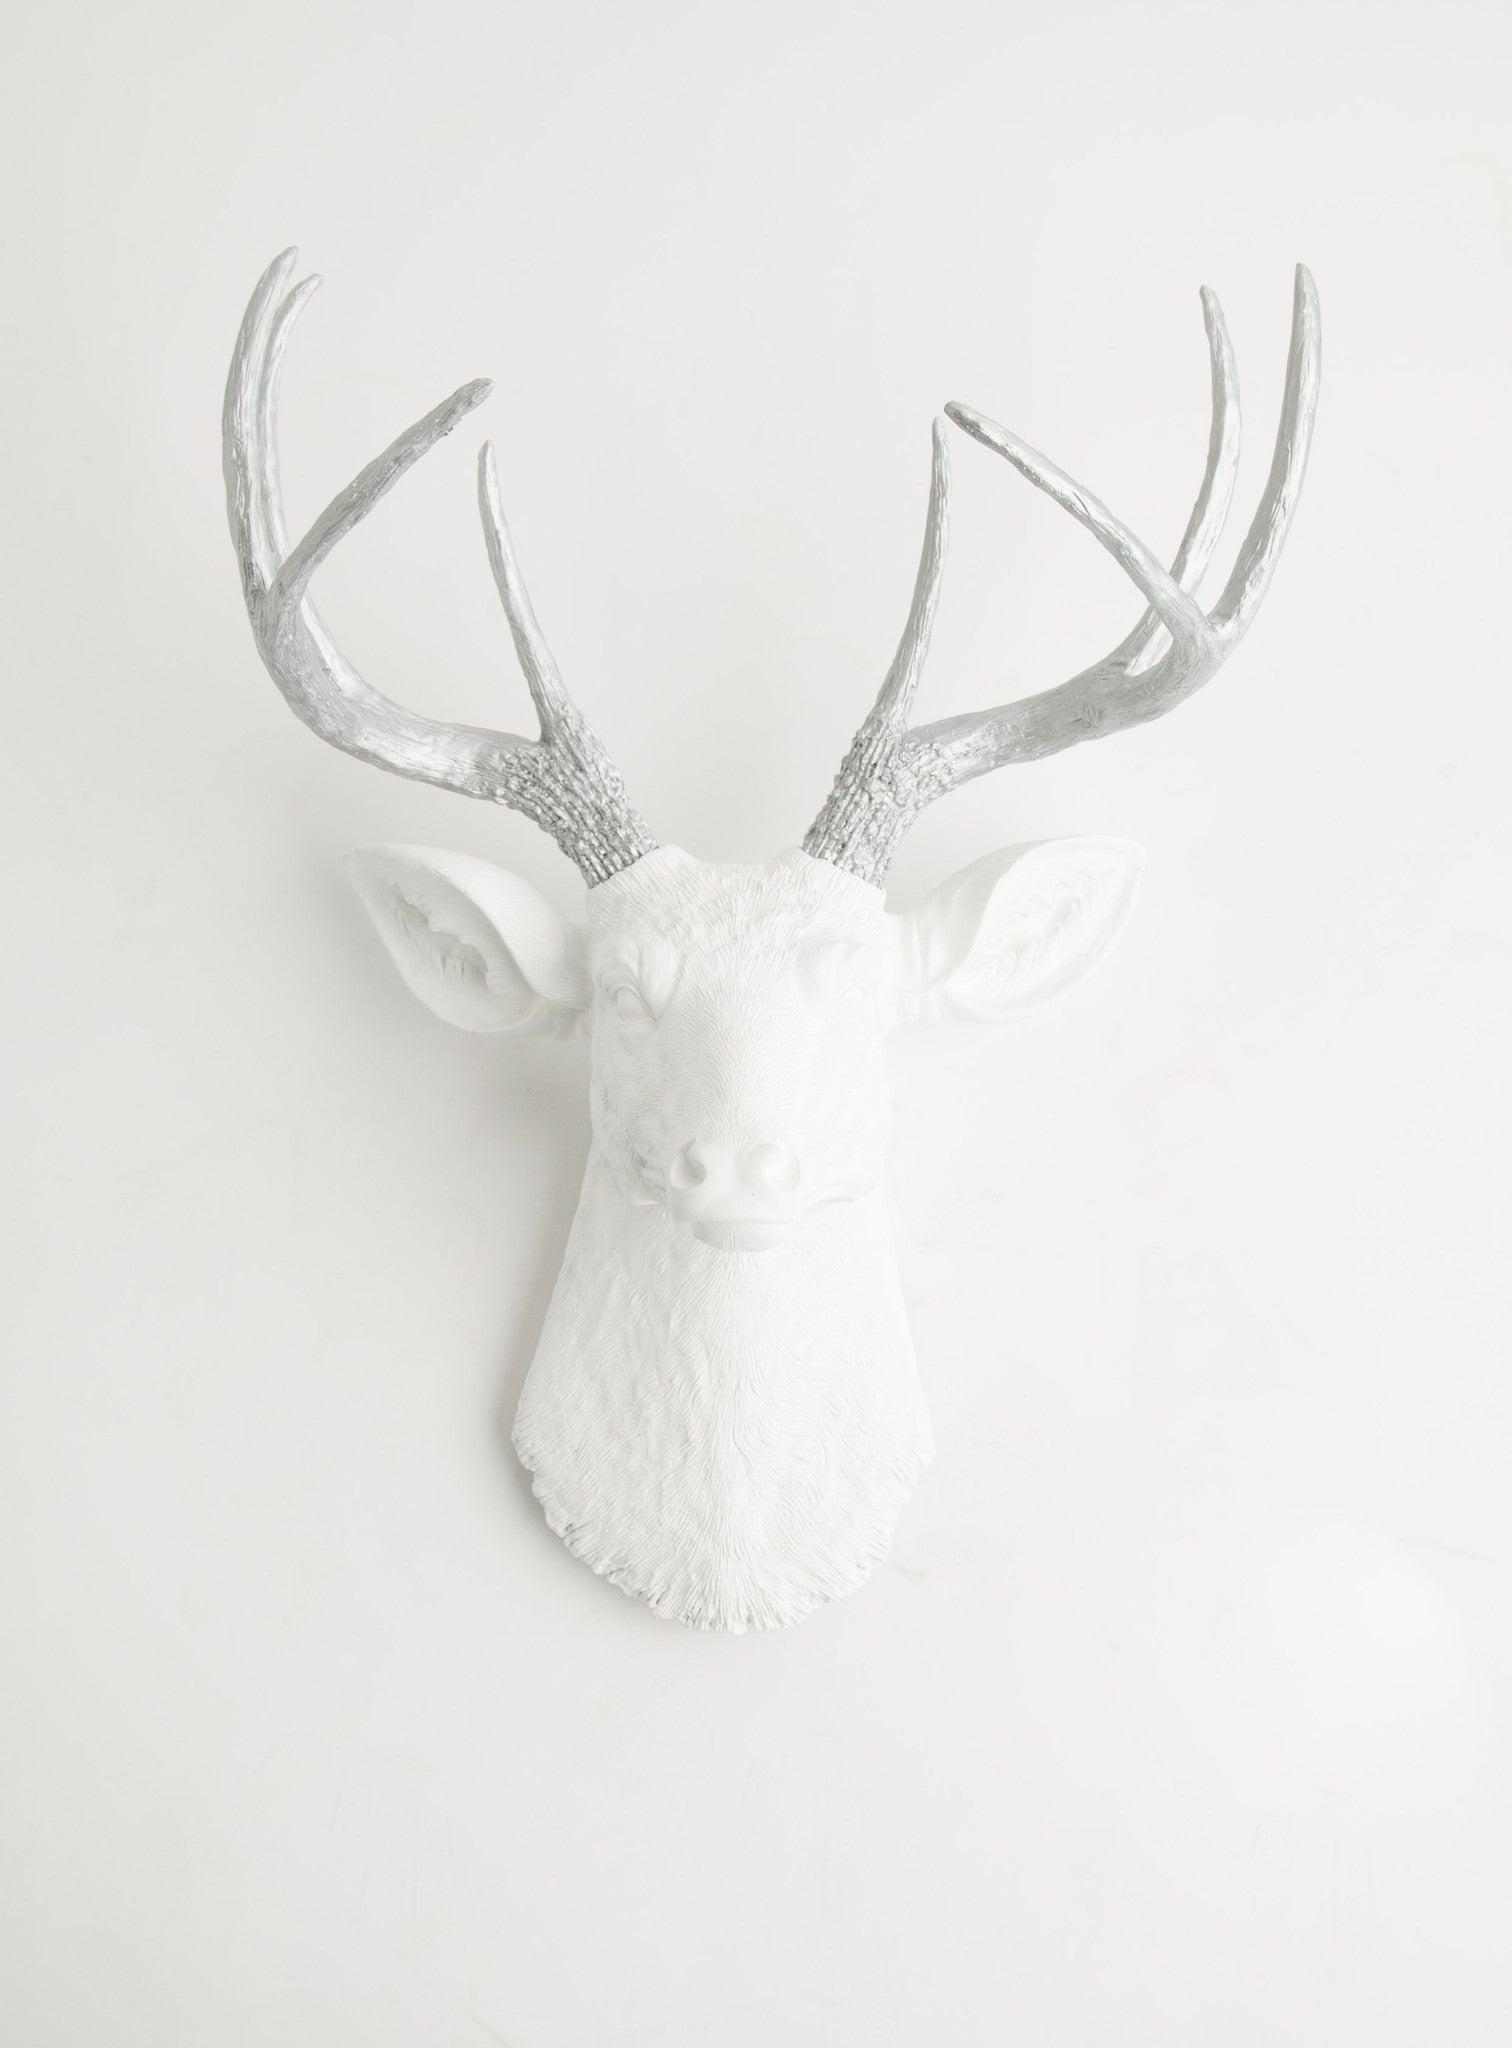 white & silver wall decor, The Frankfurt deer